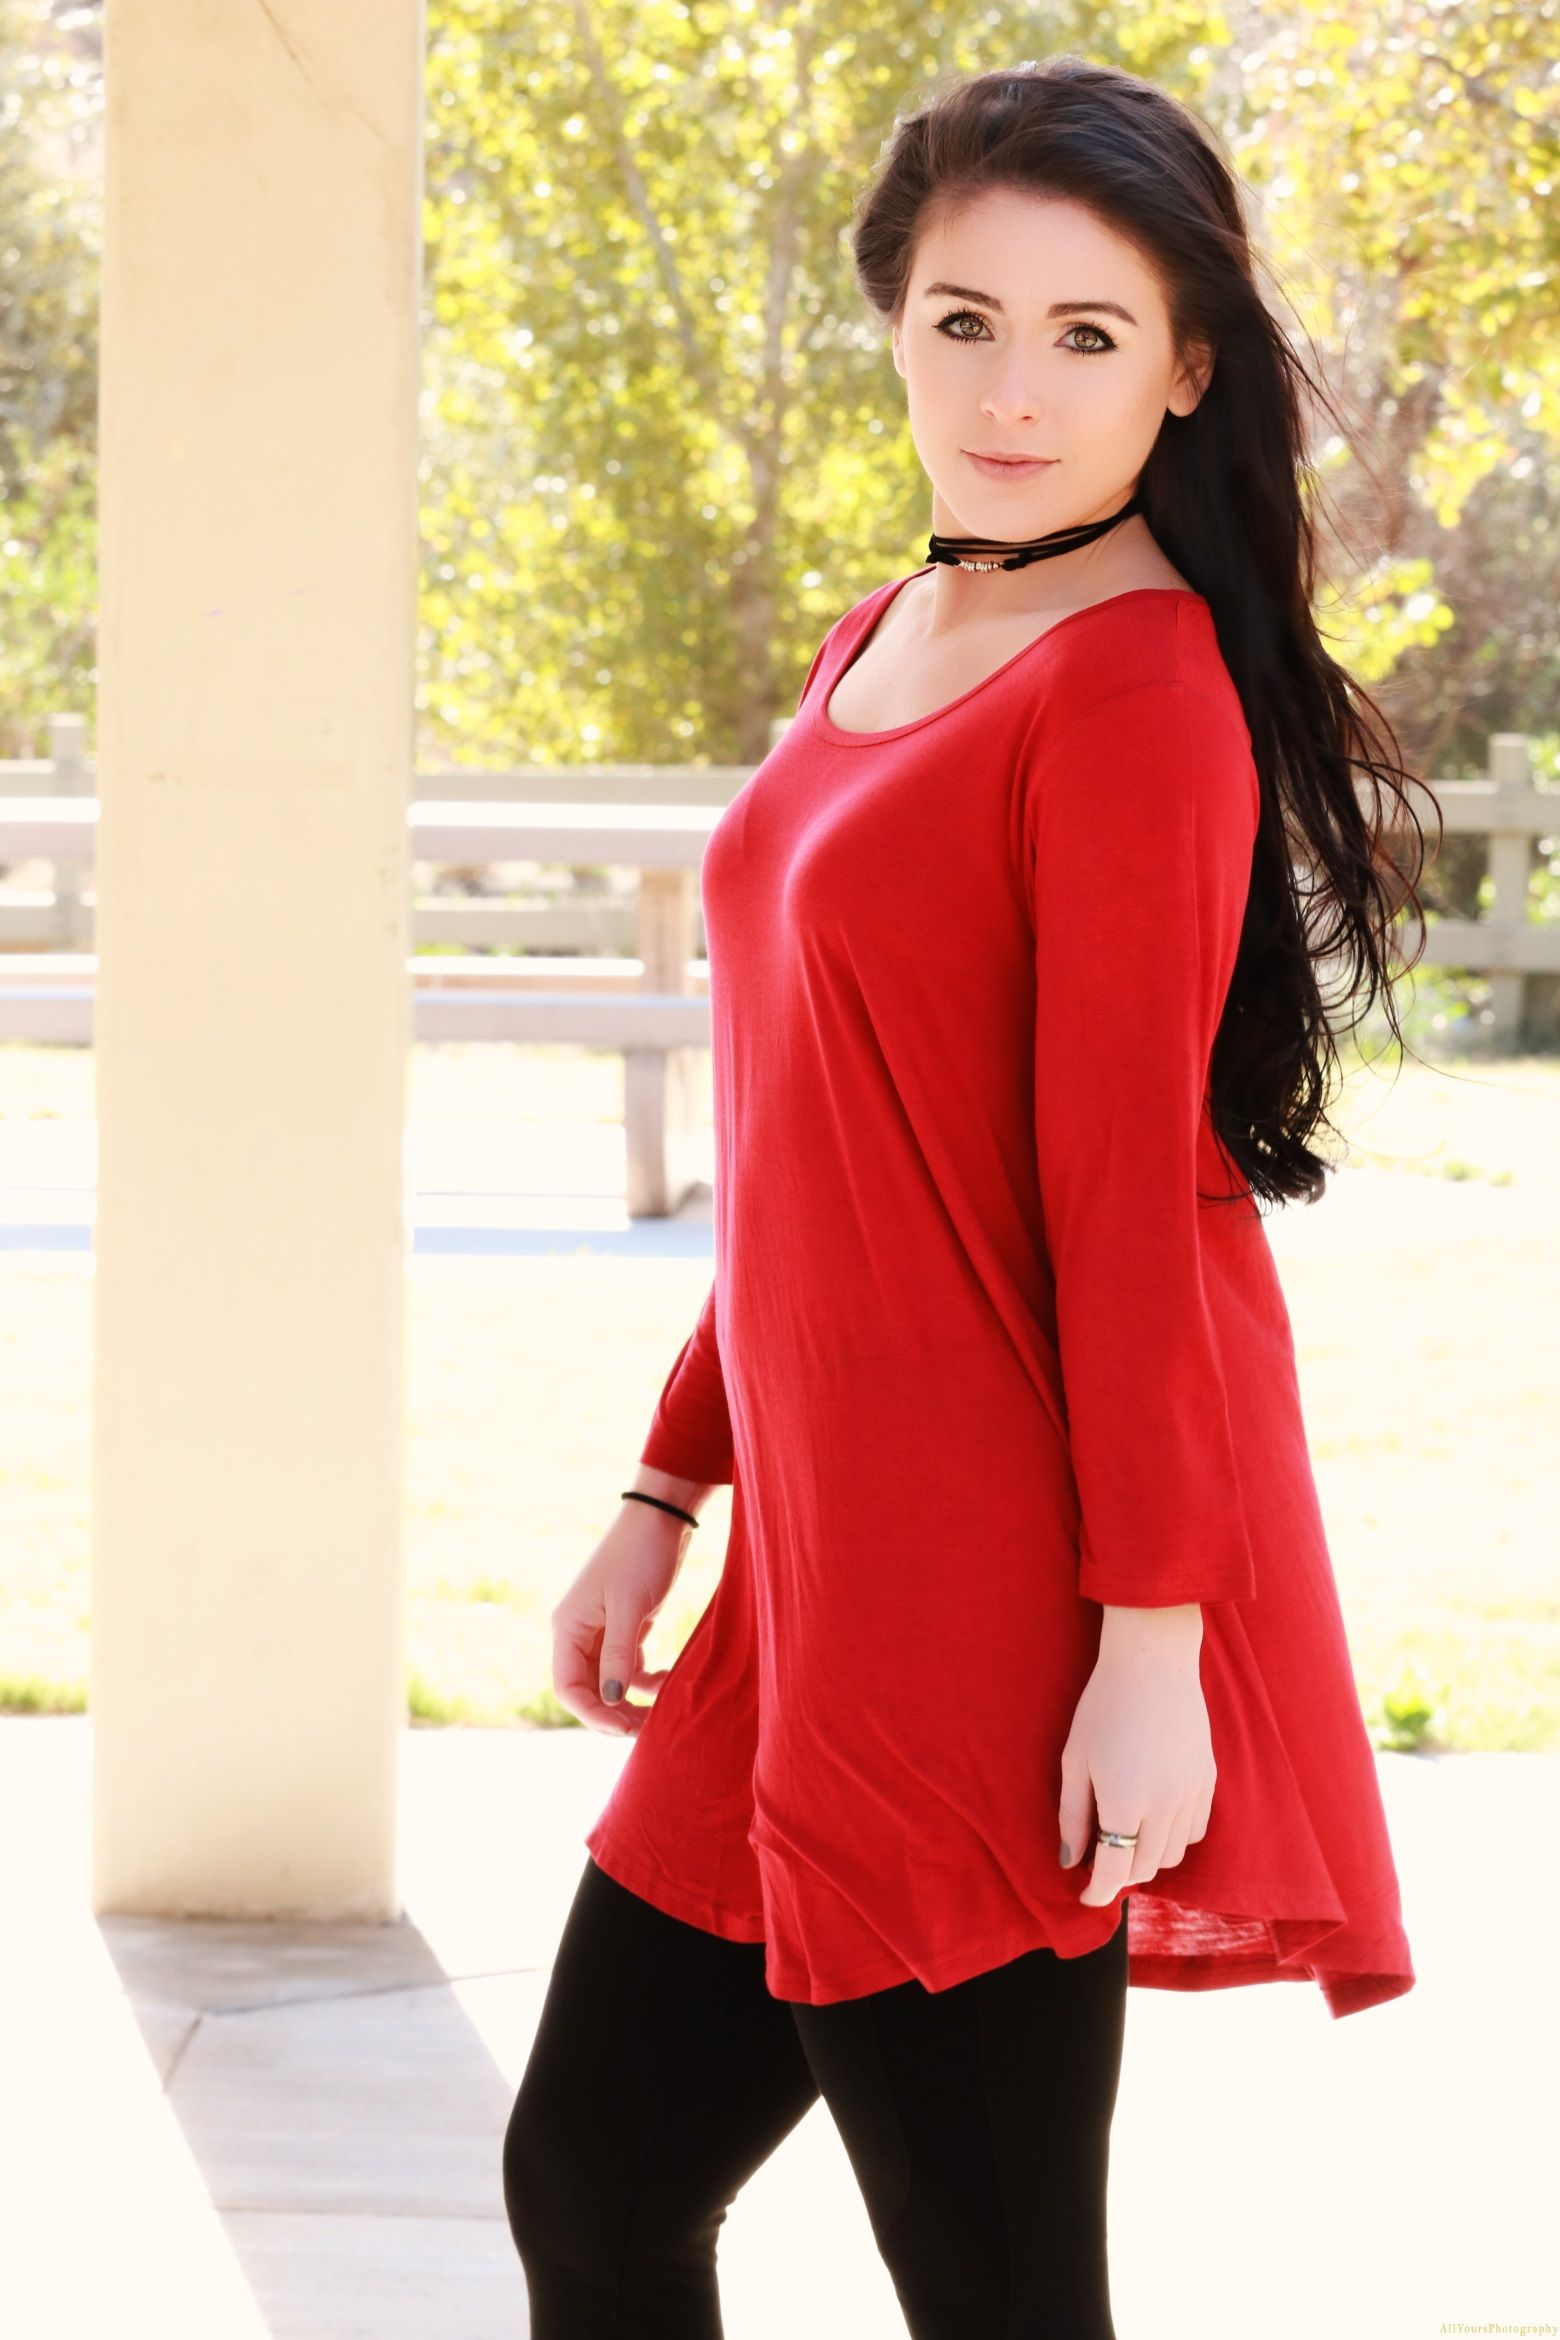 f98ee80b193 How to The Right Way Wear Flowy Tunic Tops And Leggings | DOLMAN ...